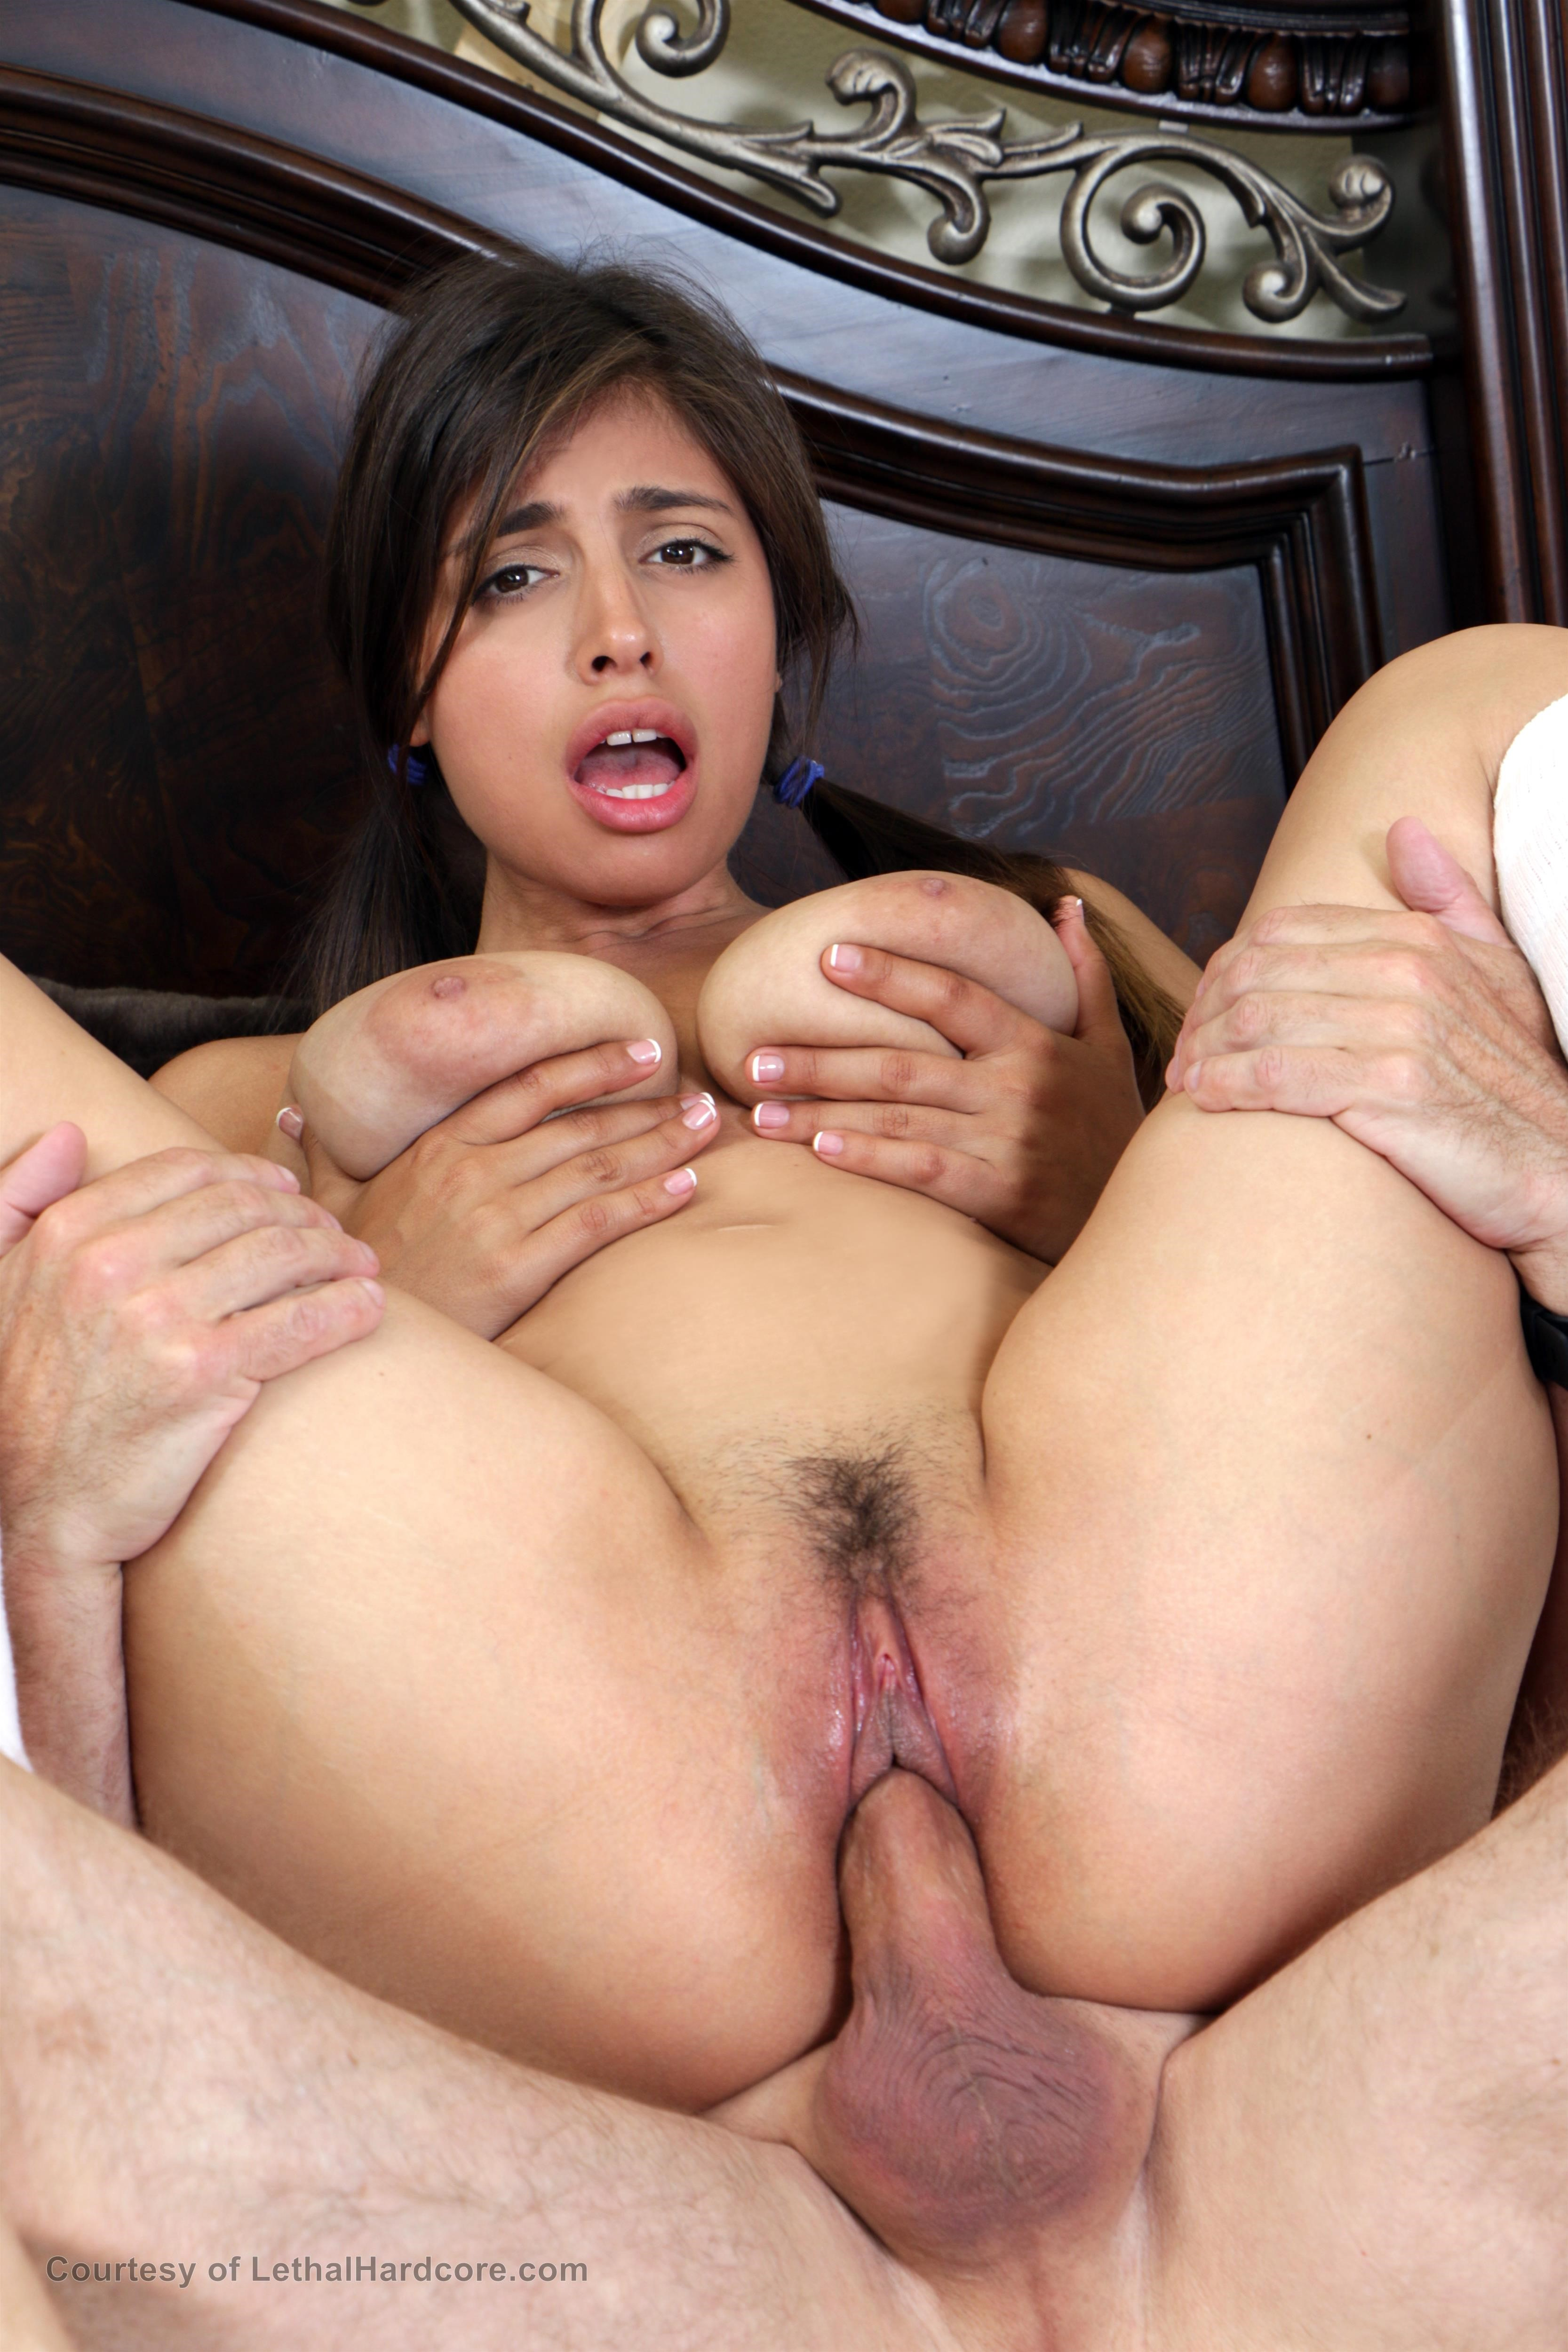 sarah and rosaline fuck with fake agent in threesome